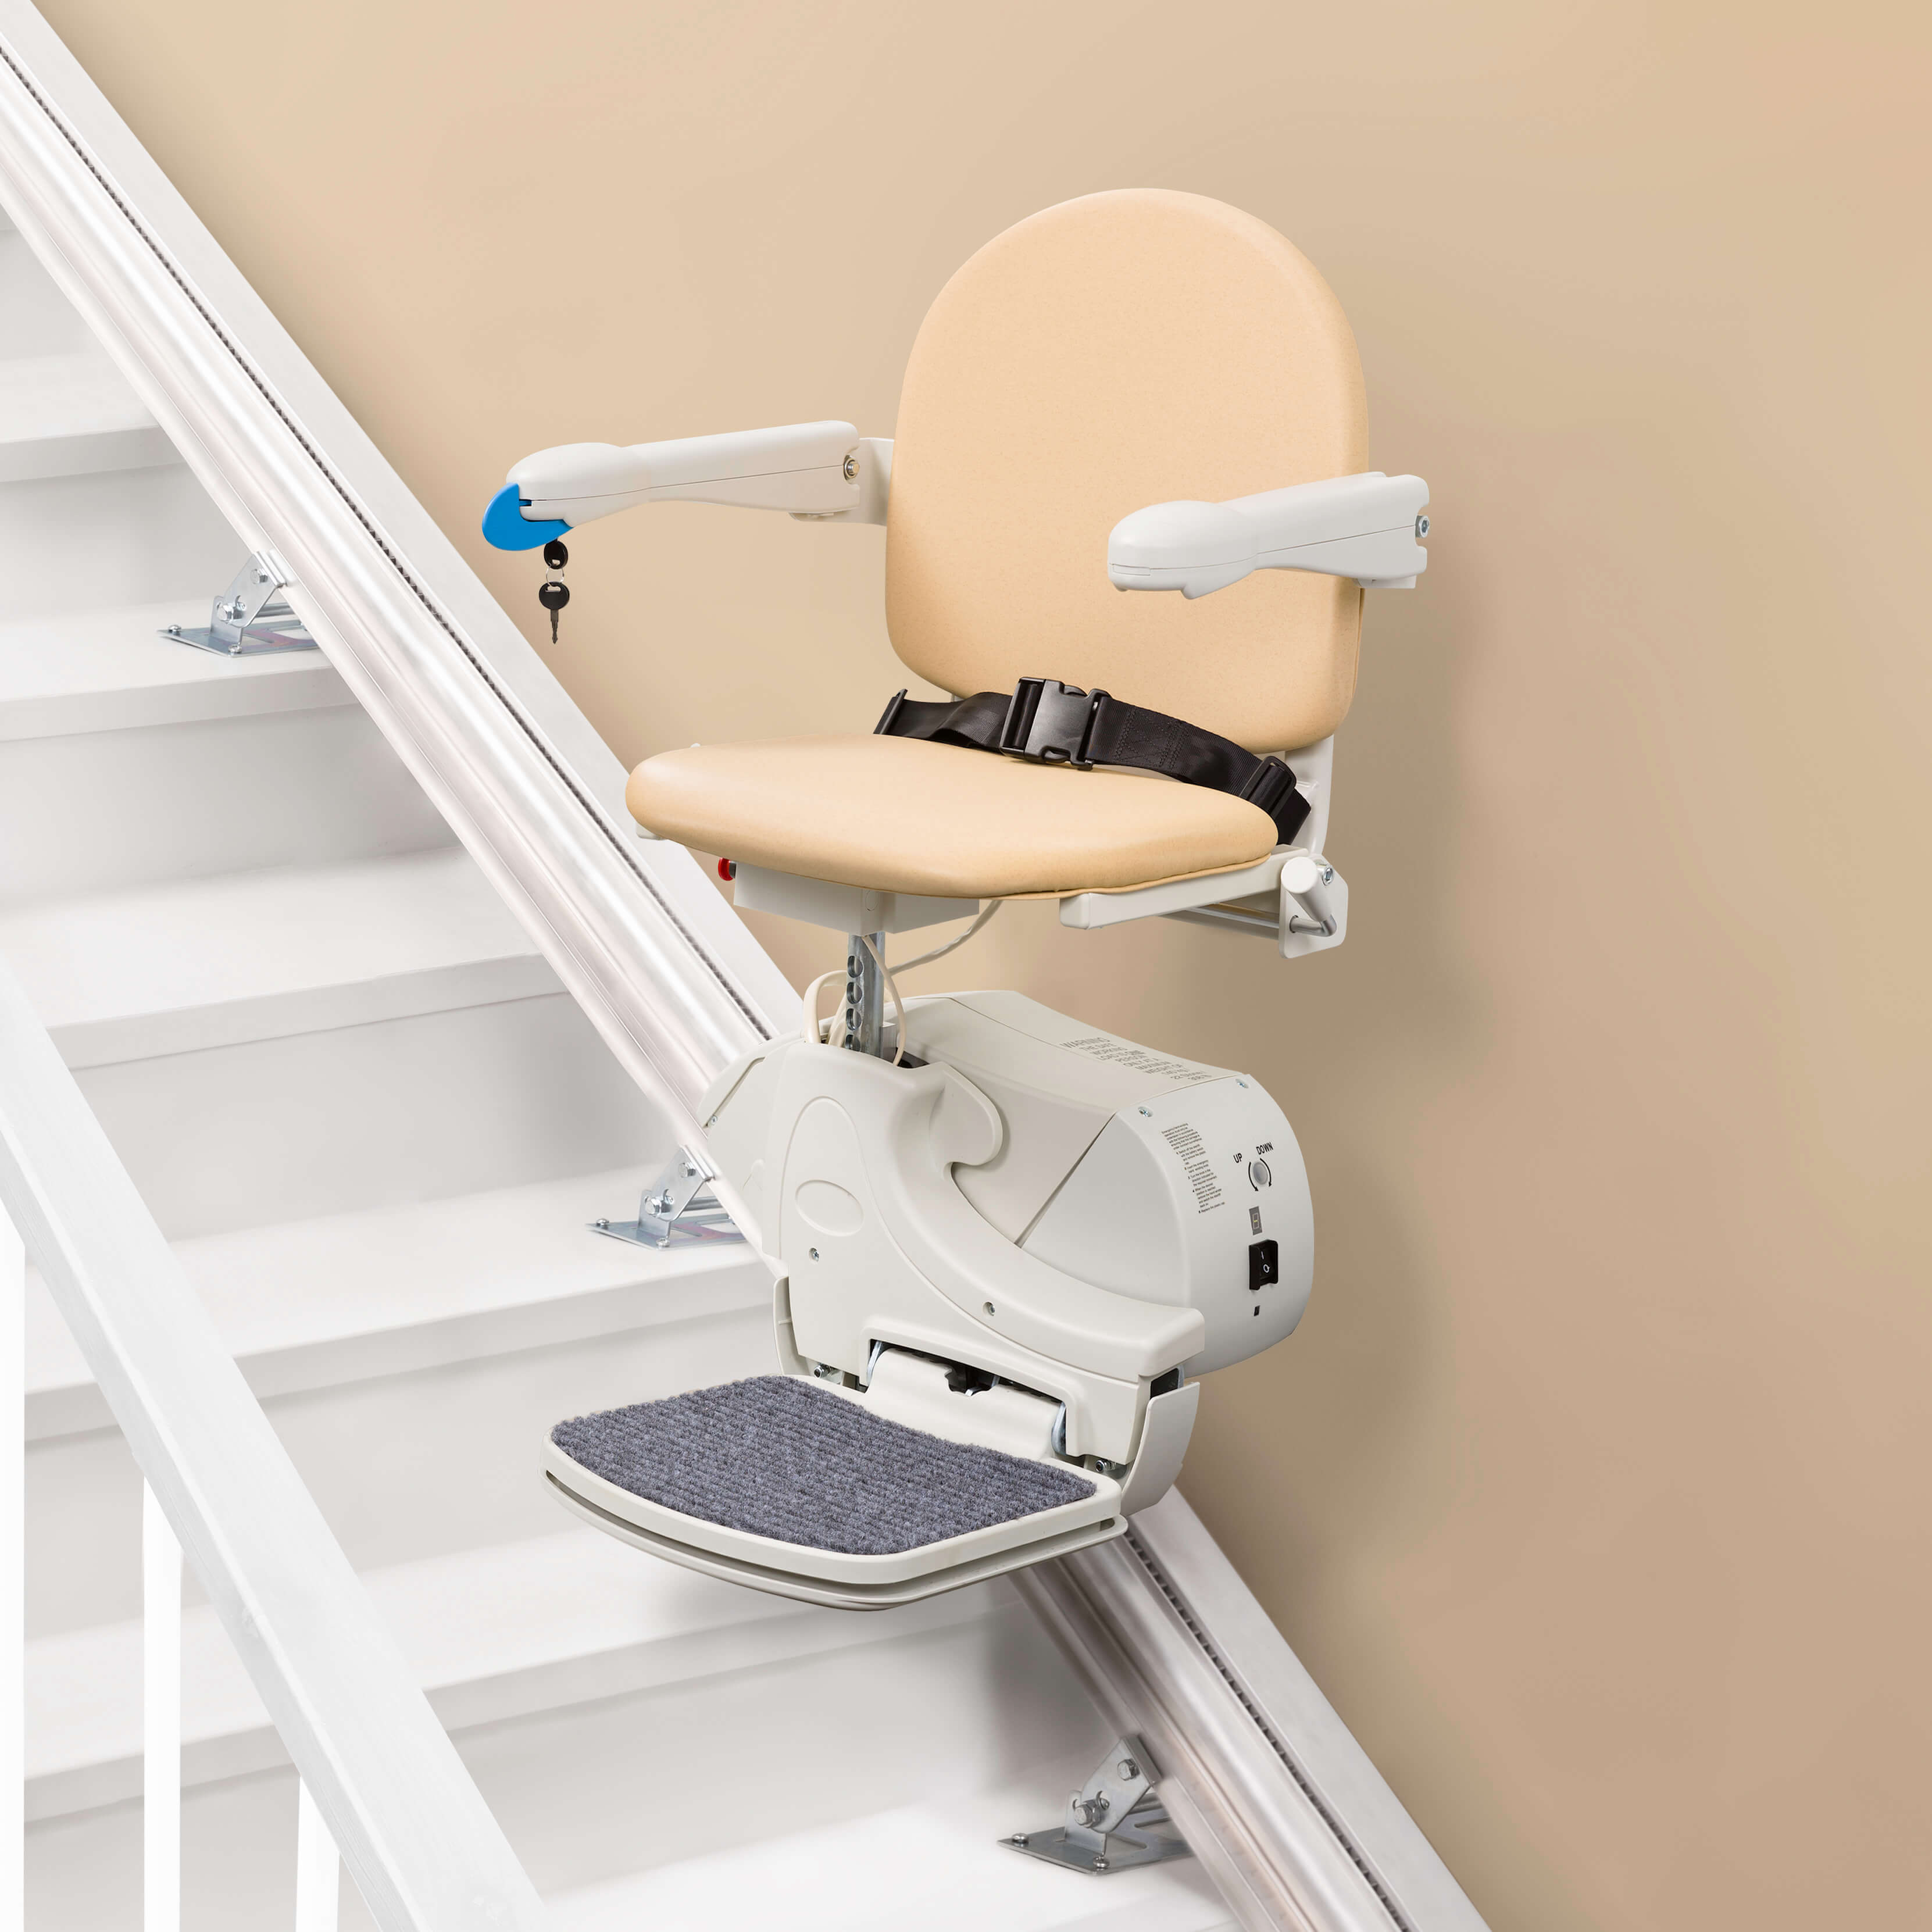 Handicare Simplicity 950 Stairlift In Denver, CO